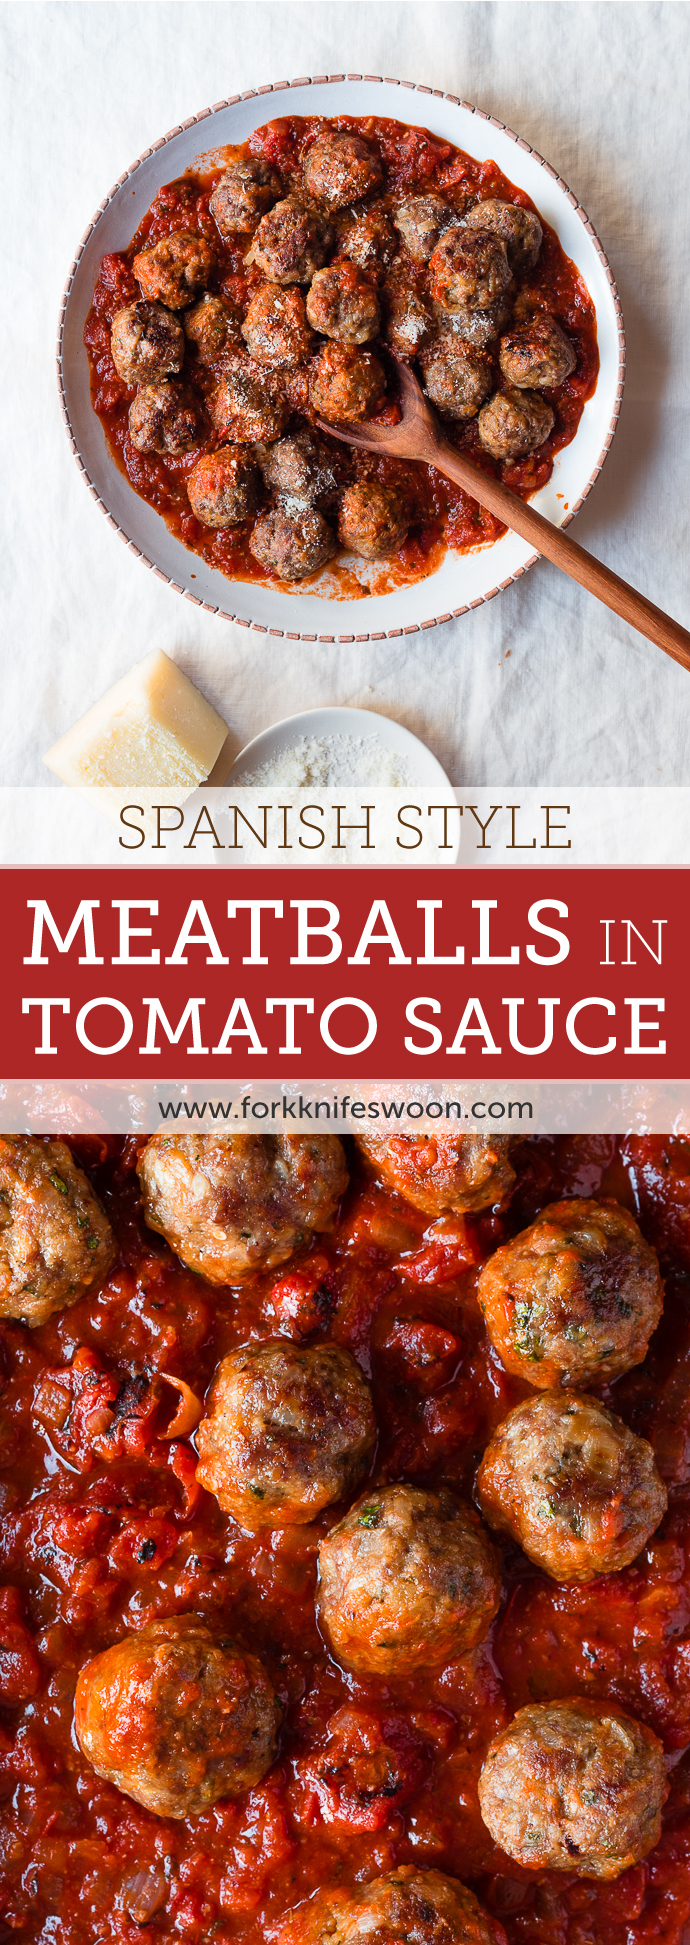 Spanish Style Meatballs in Spicy Tomato Sauce | Fork Knife Swoon @forkknifeswoon